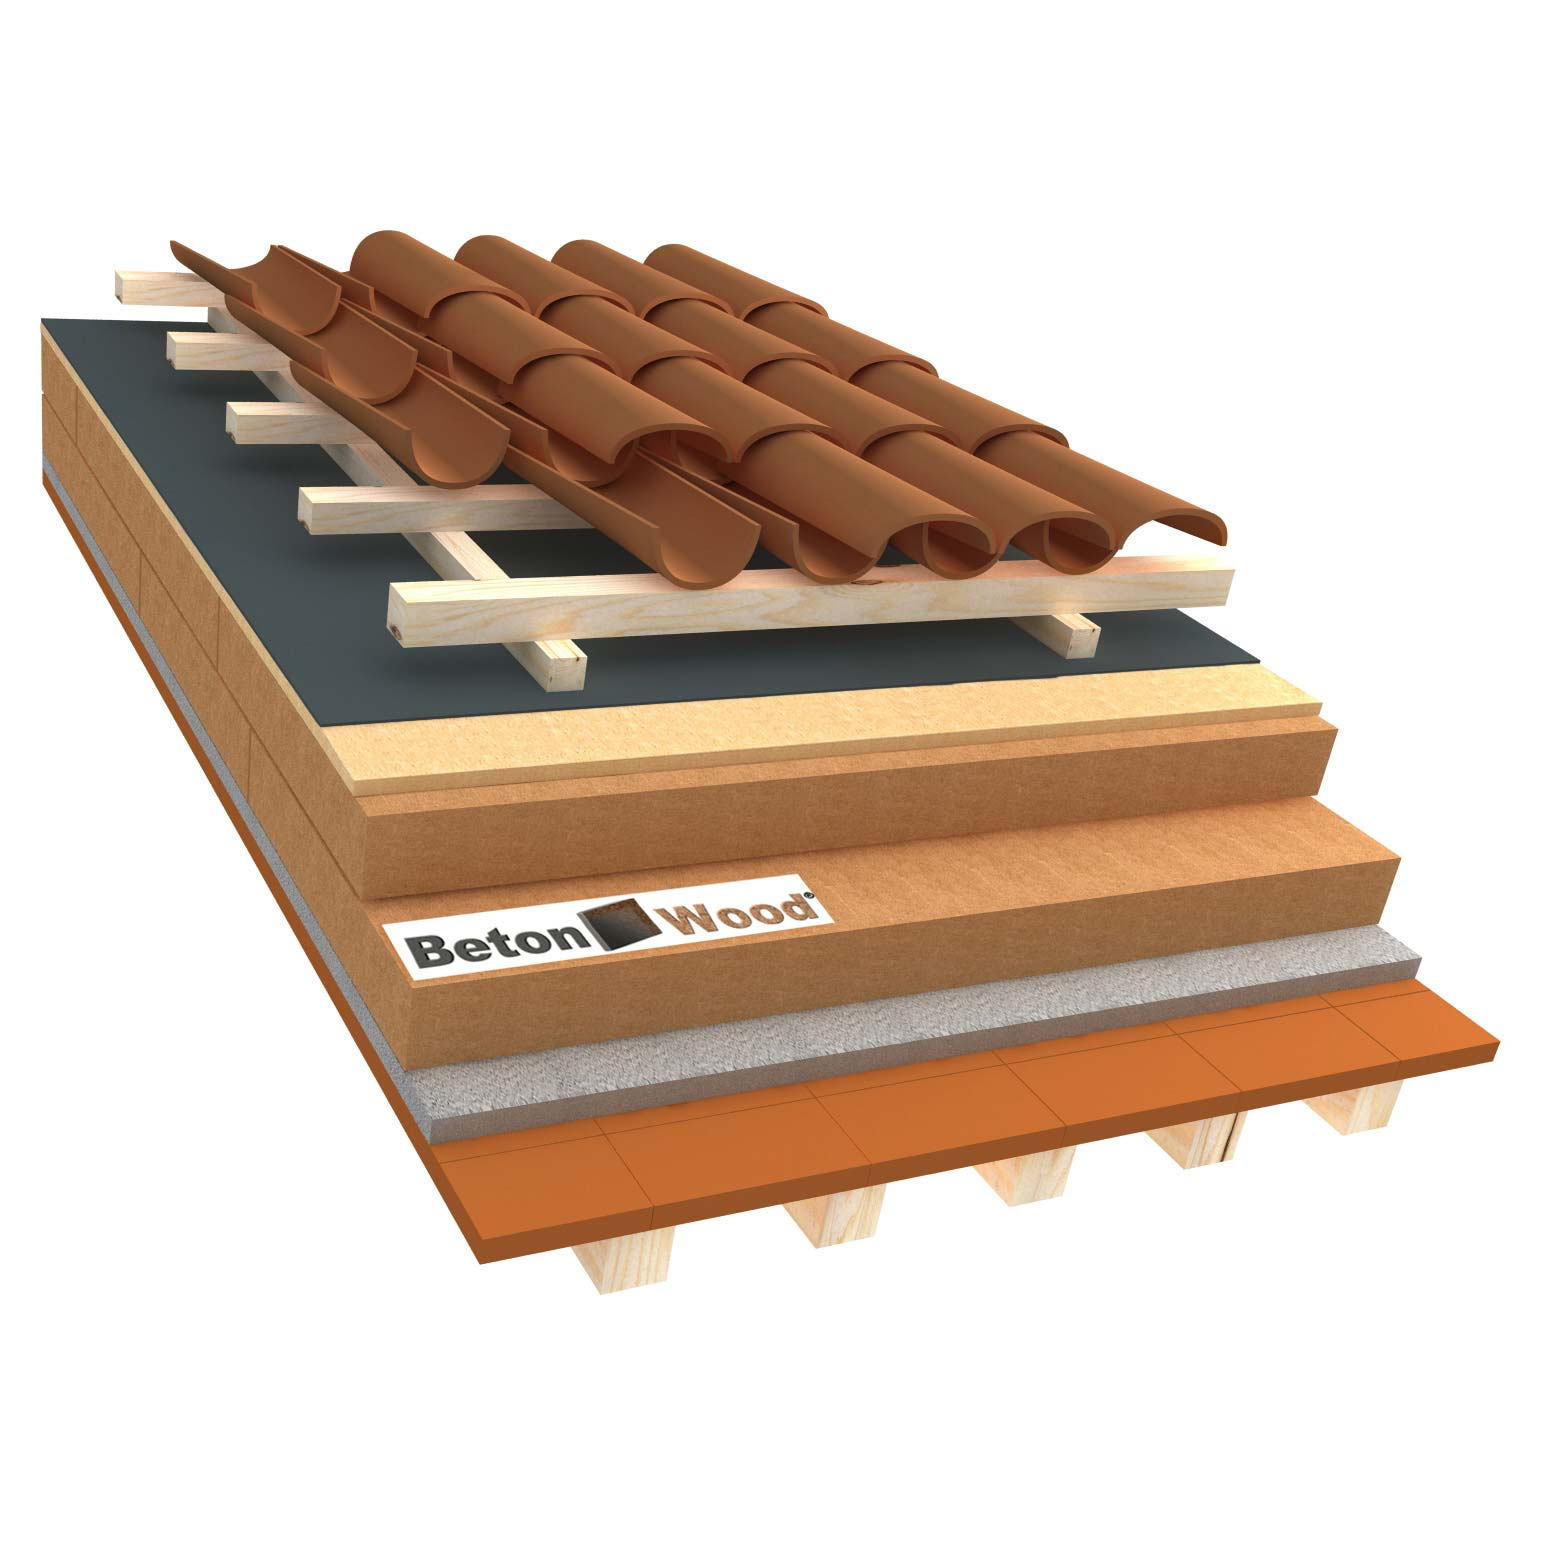 Ventilated roof with fiber wood Isorel and Special on terracotta tiles